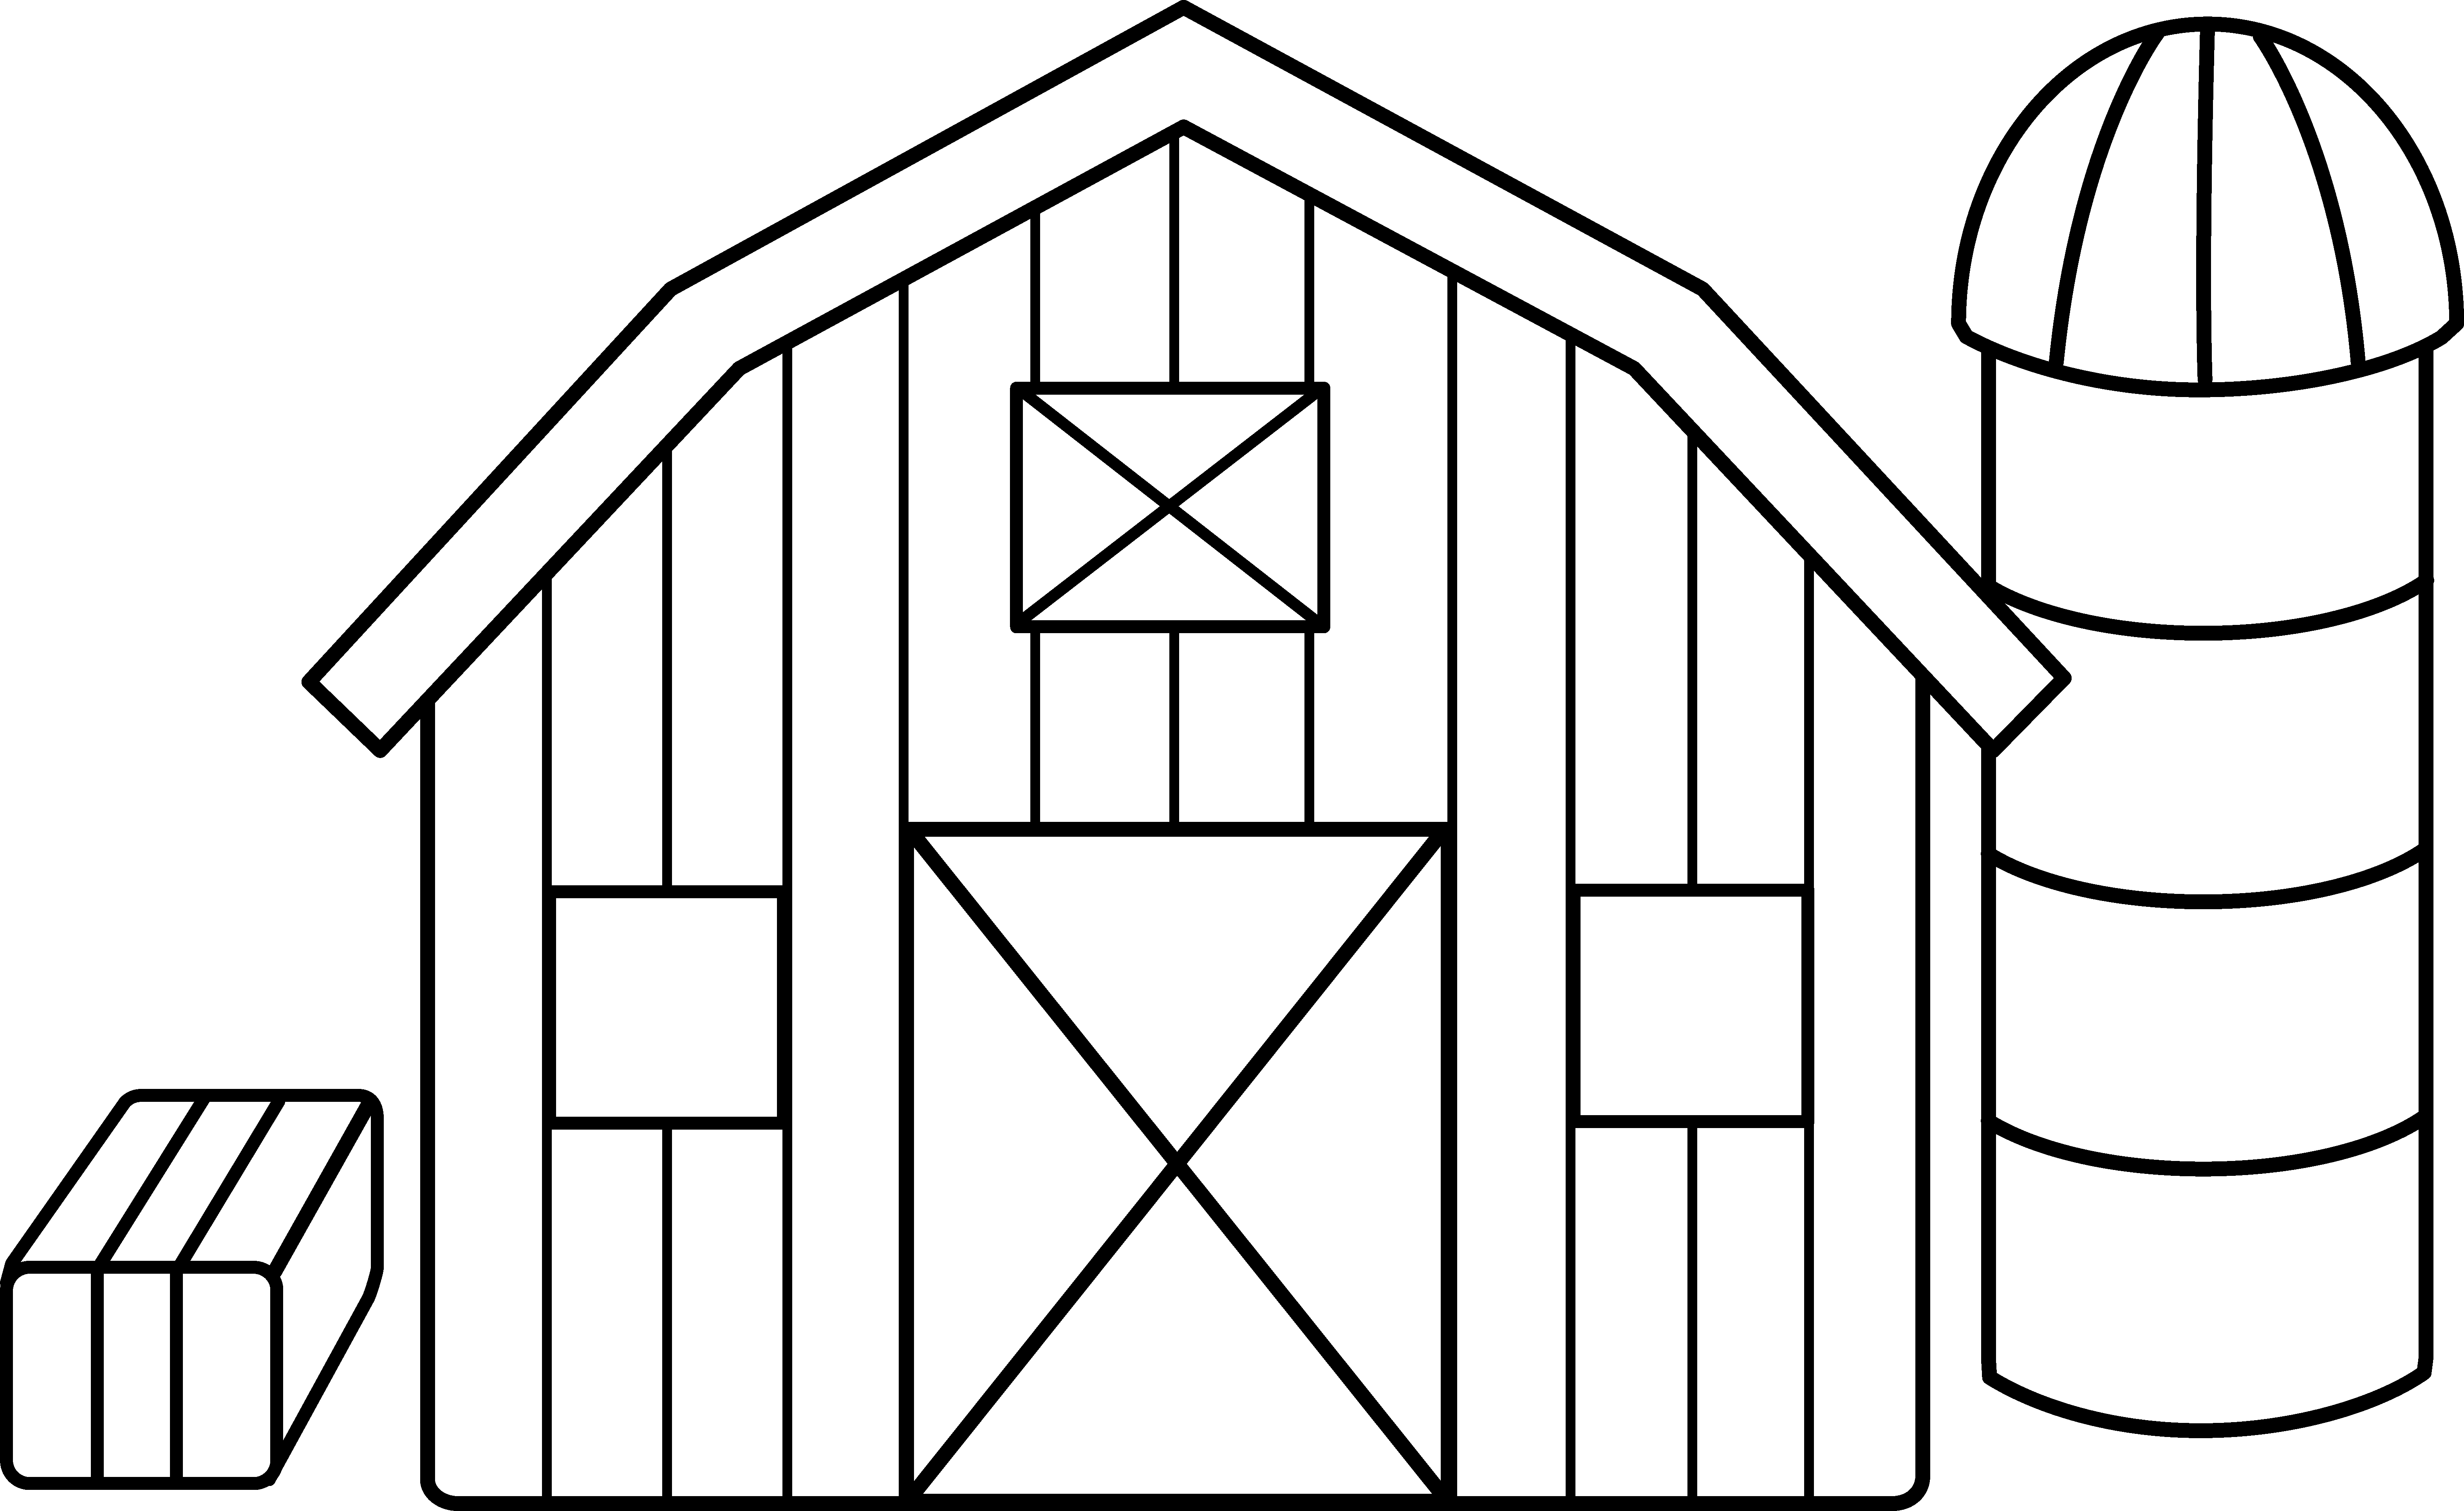 farm house coloring pages farm colouring pages for kids house coloring pages farm